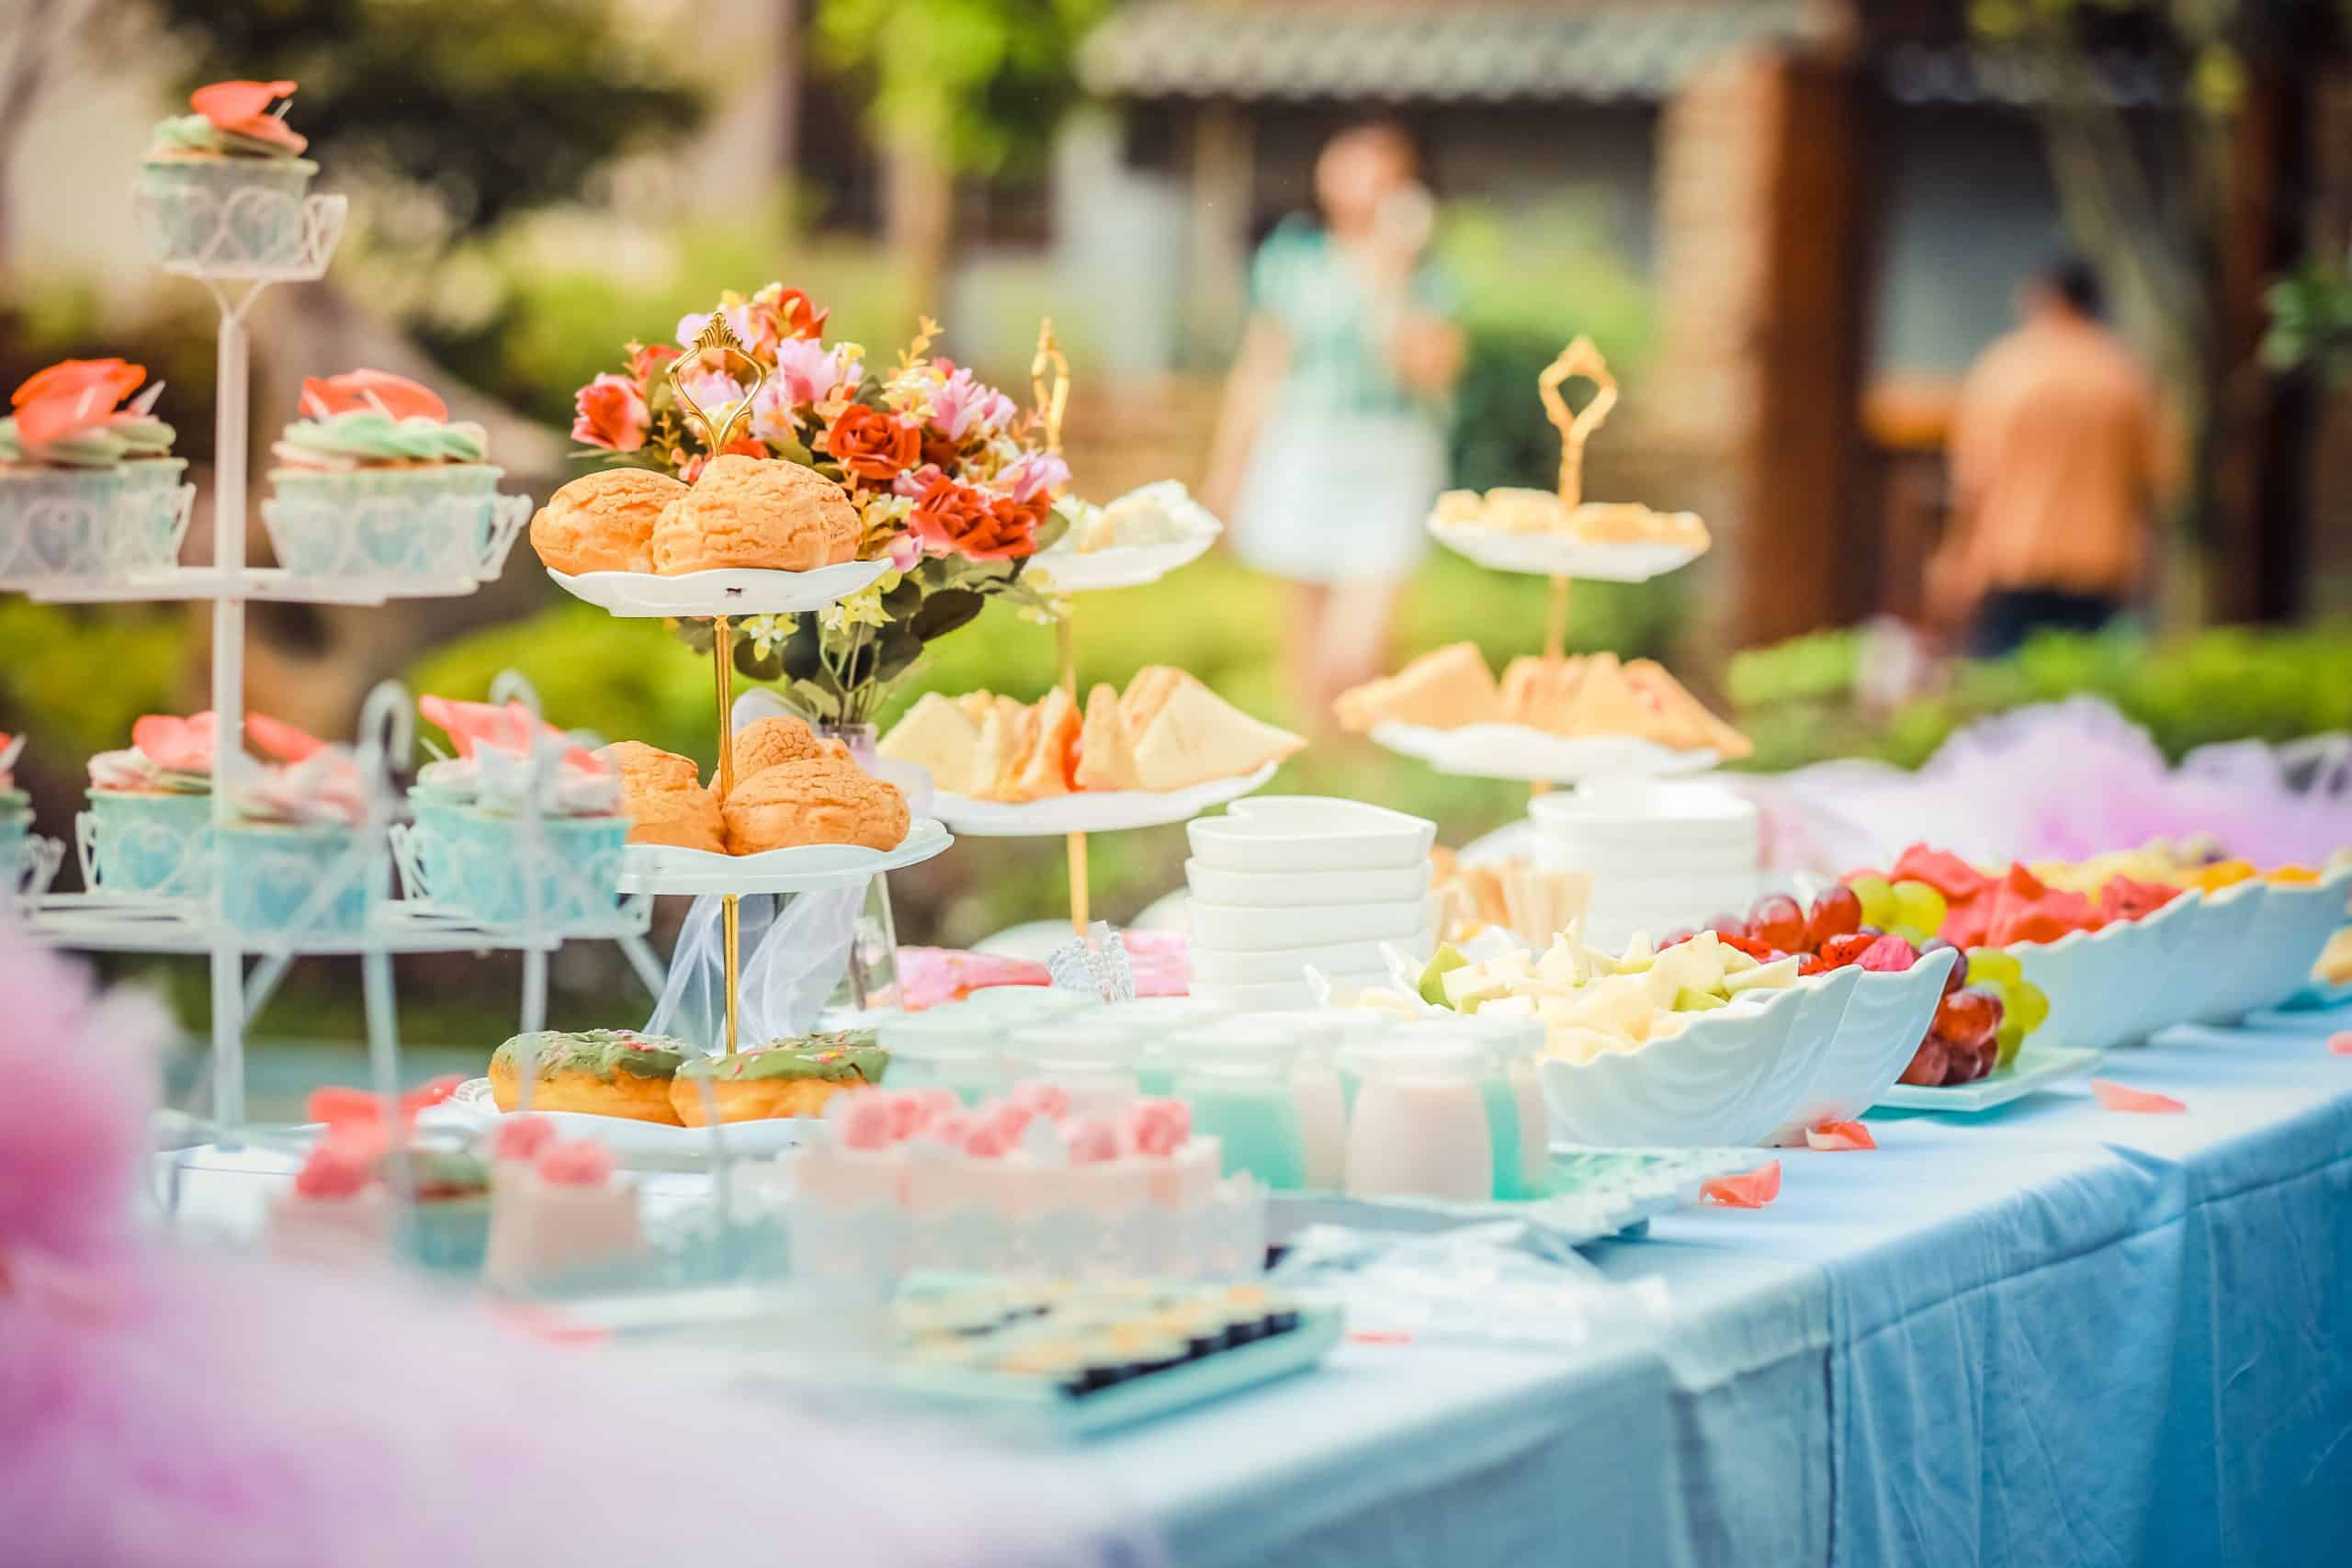 What are the types of wedding catering services?